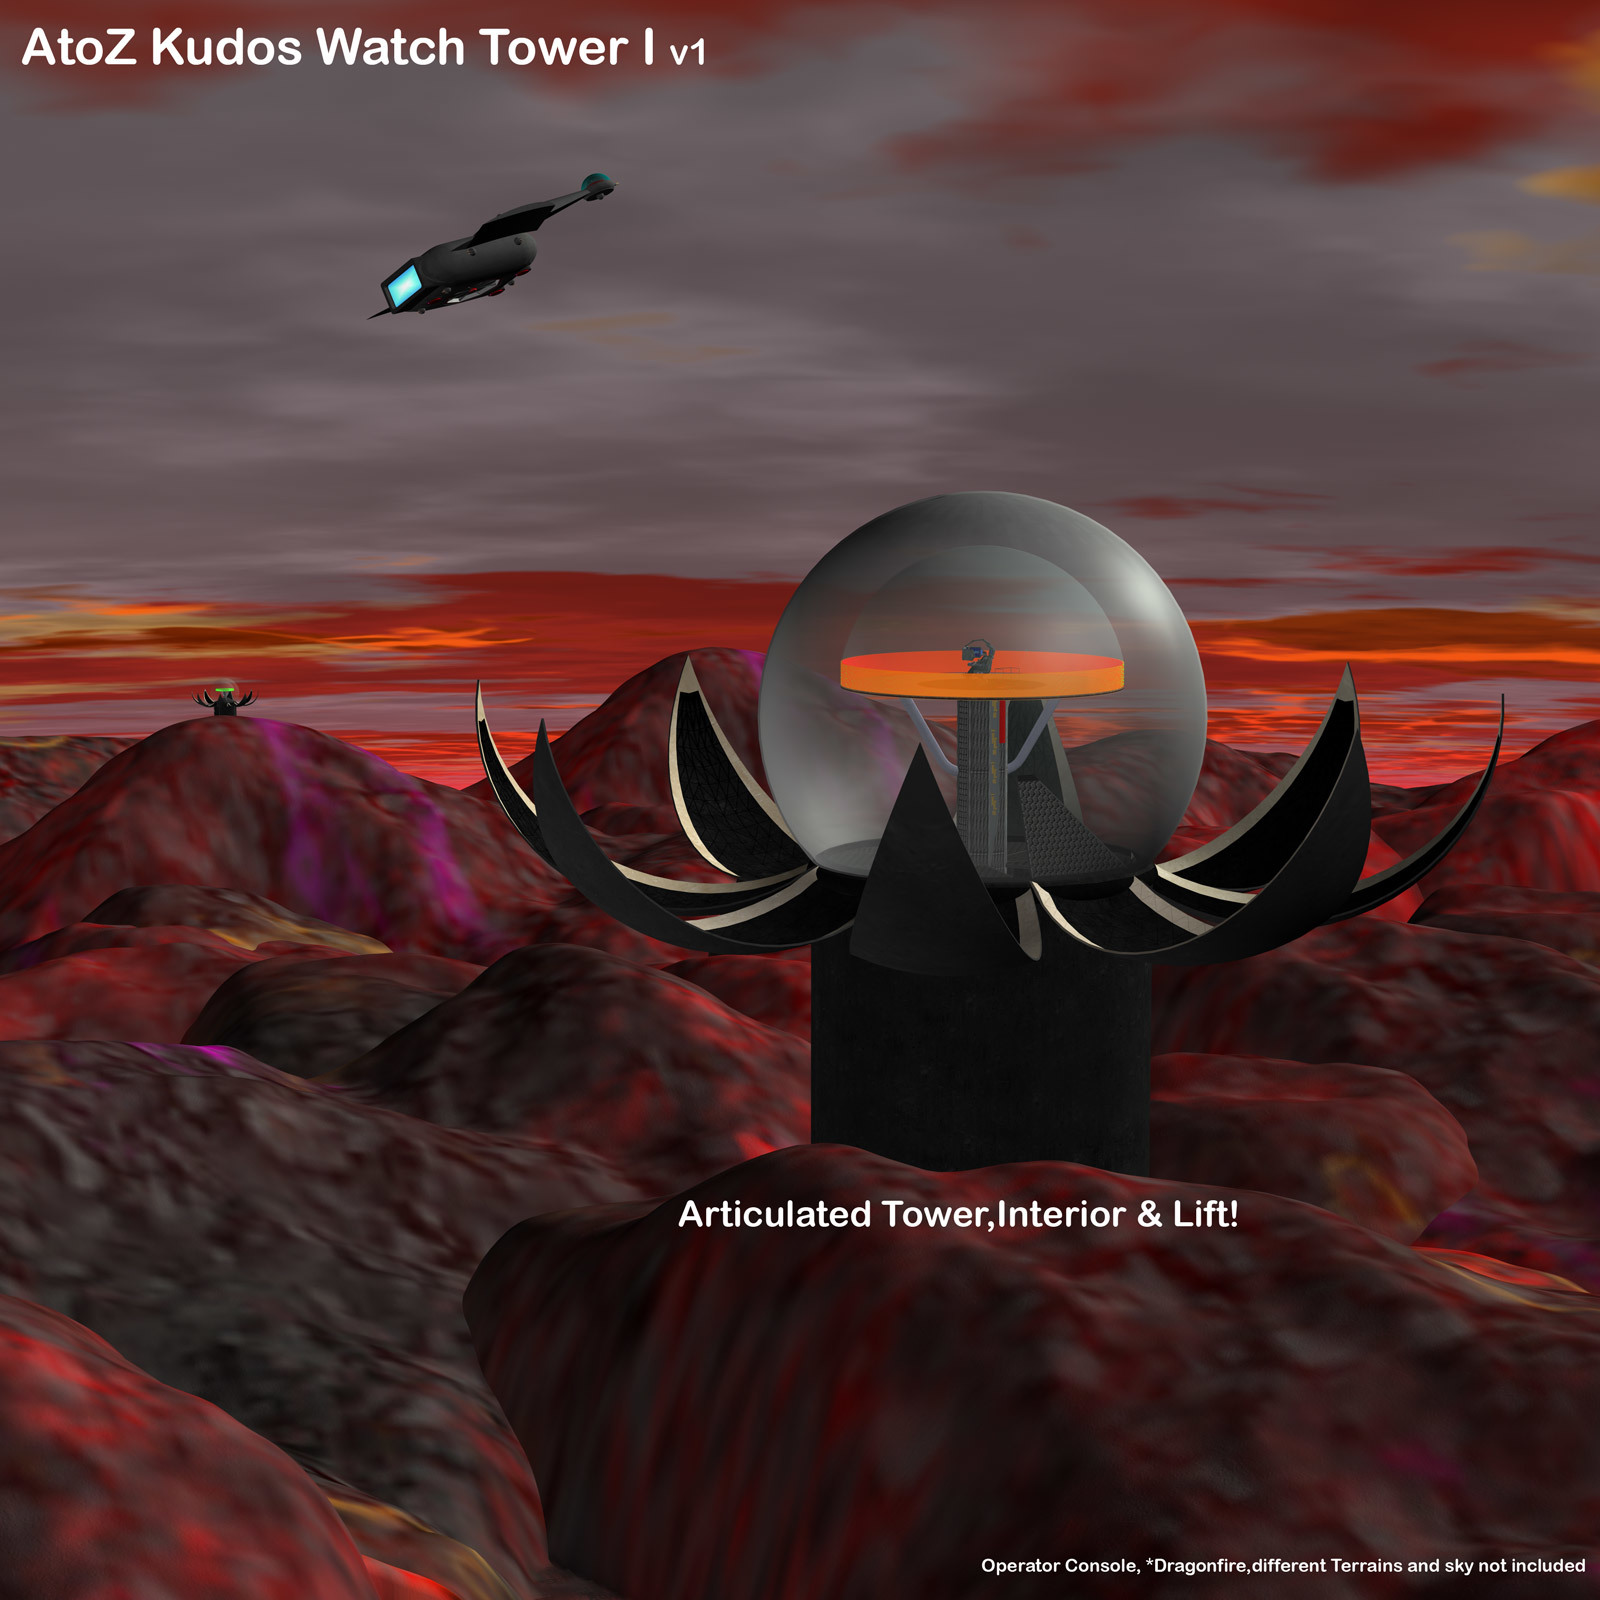 AtoZ Kudos Watch Tower I v1